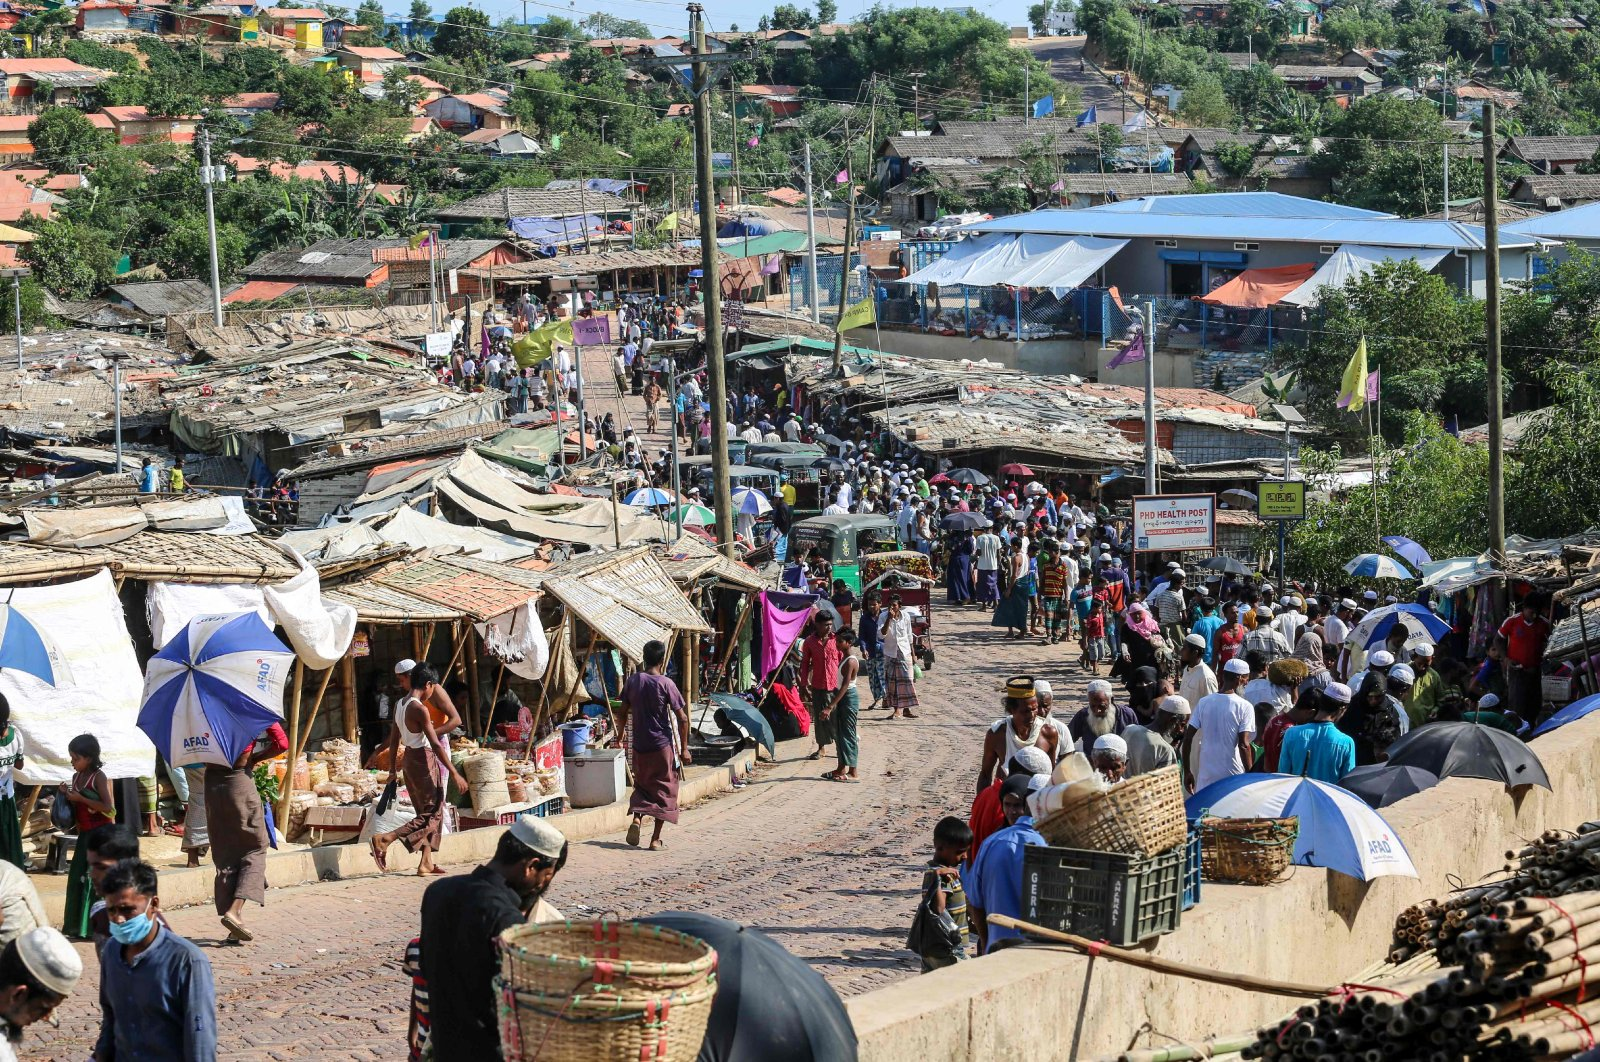 Rohingya refugees gather at a market as the first cases of COVID-19 emerged in the area, in the Kutupalong refugee camp in Ukhia, May 15, 2020. (AFP Photo)